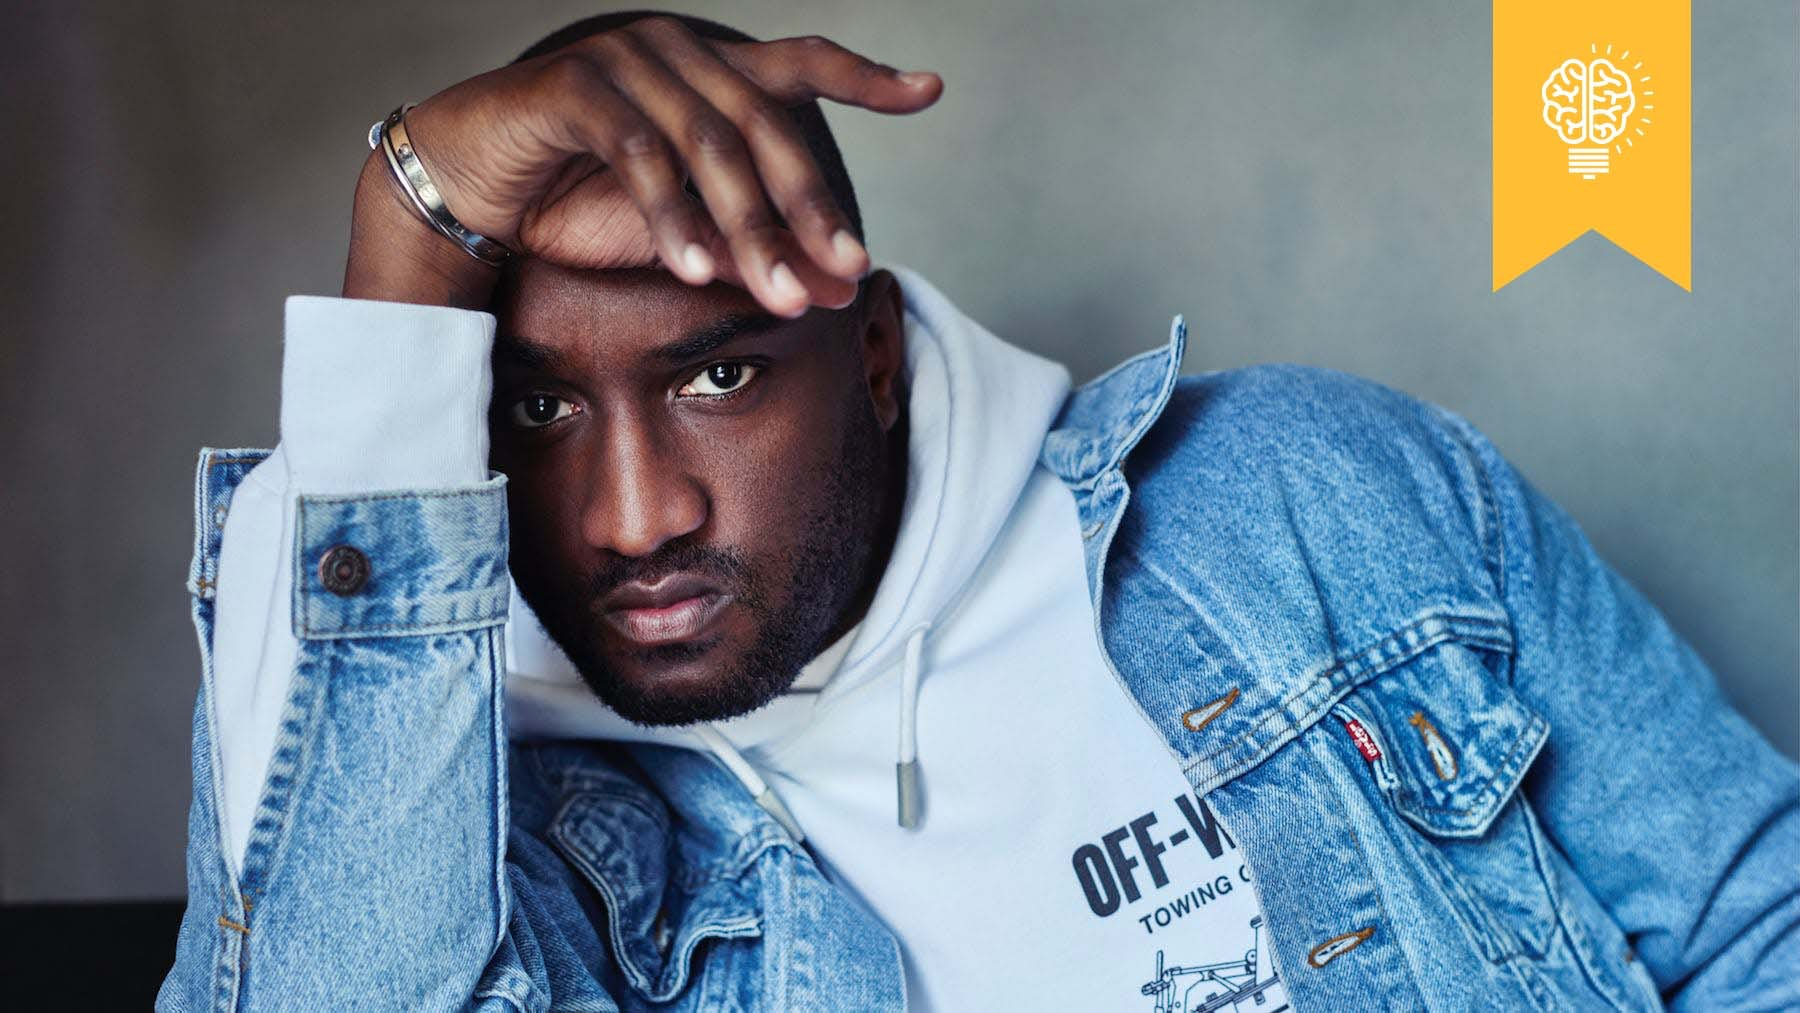 Virgil Abloh | Photo: Christian Anwander